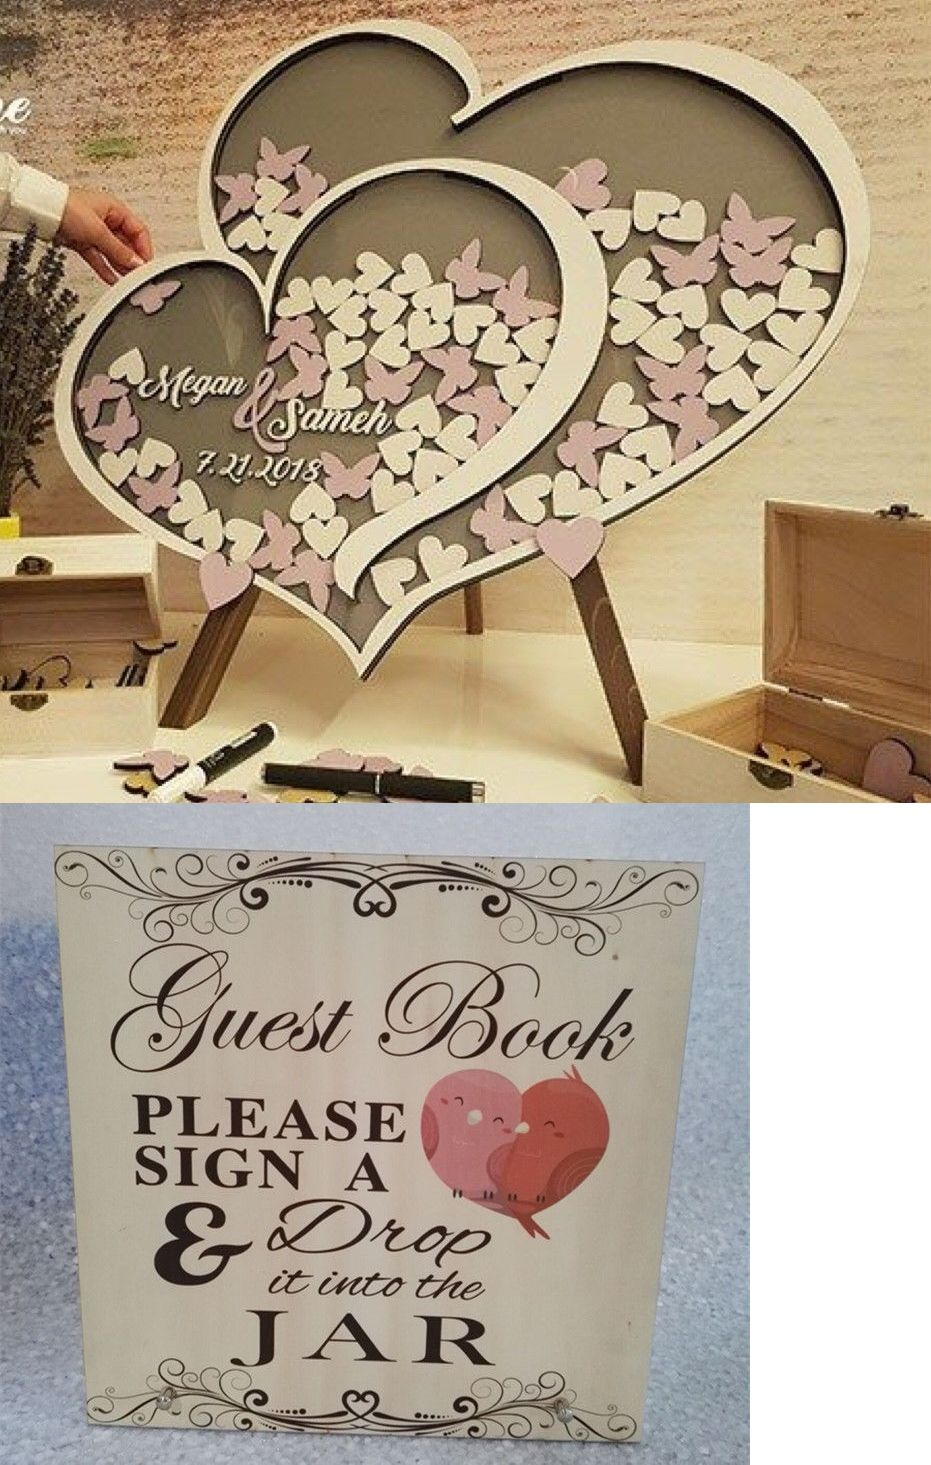 Details about personalised wedding party guest book